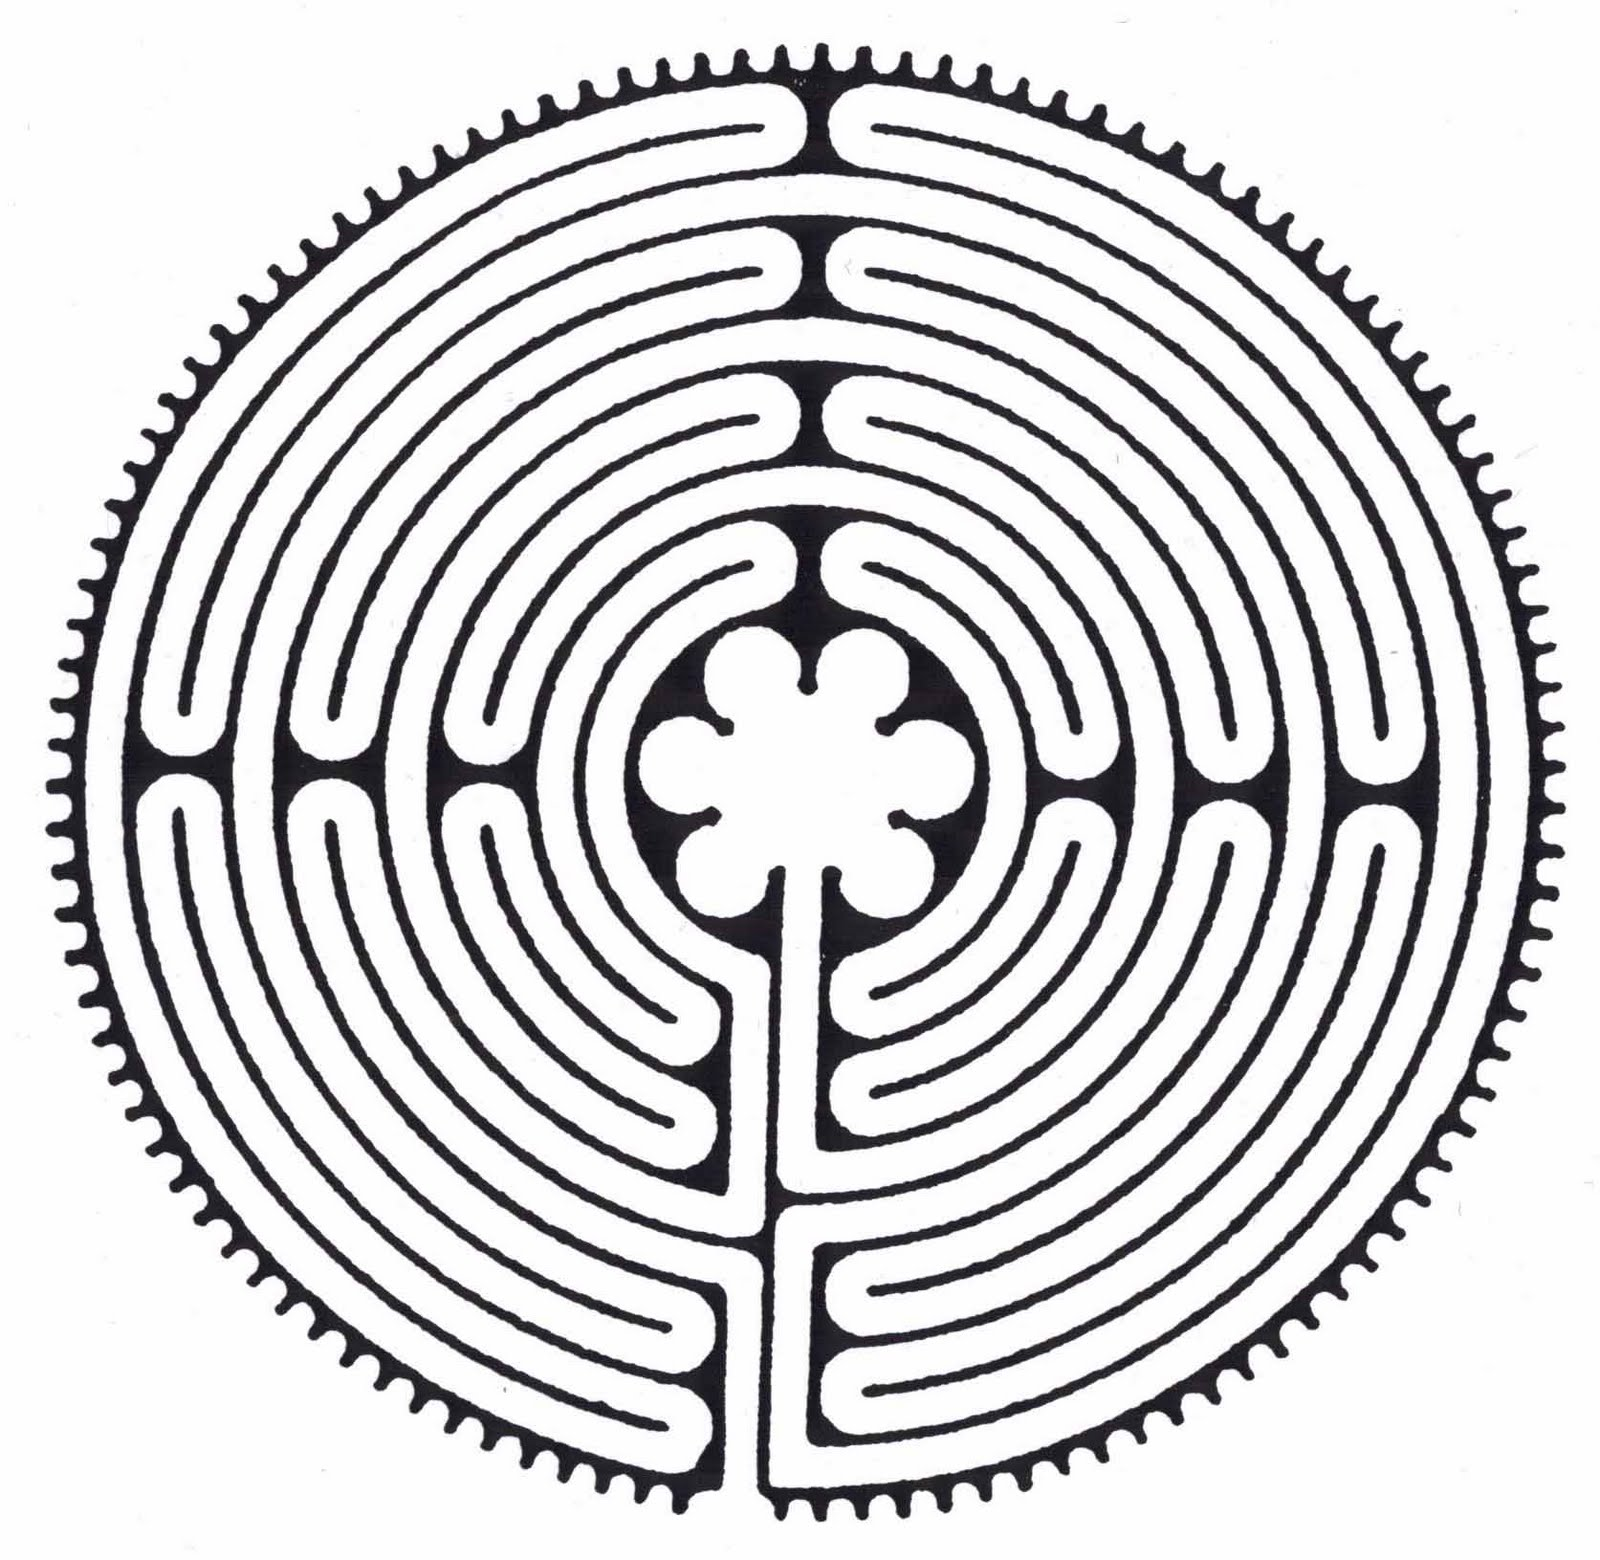 Symbols empathy empathic perspectives a labyrinth contains non verbal implicate geometric and numerological prompts that create a multi dimensional holographic field these unseen patterns are biocorpaavc